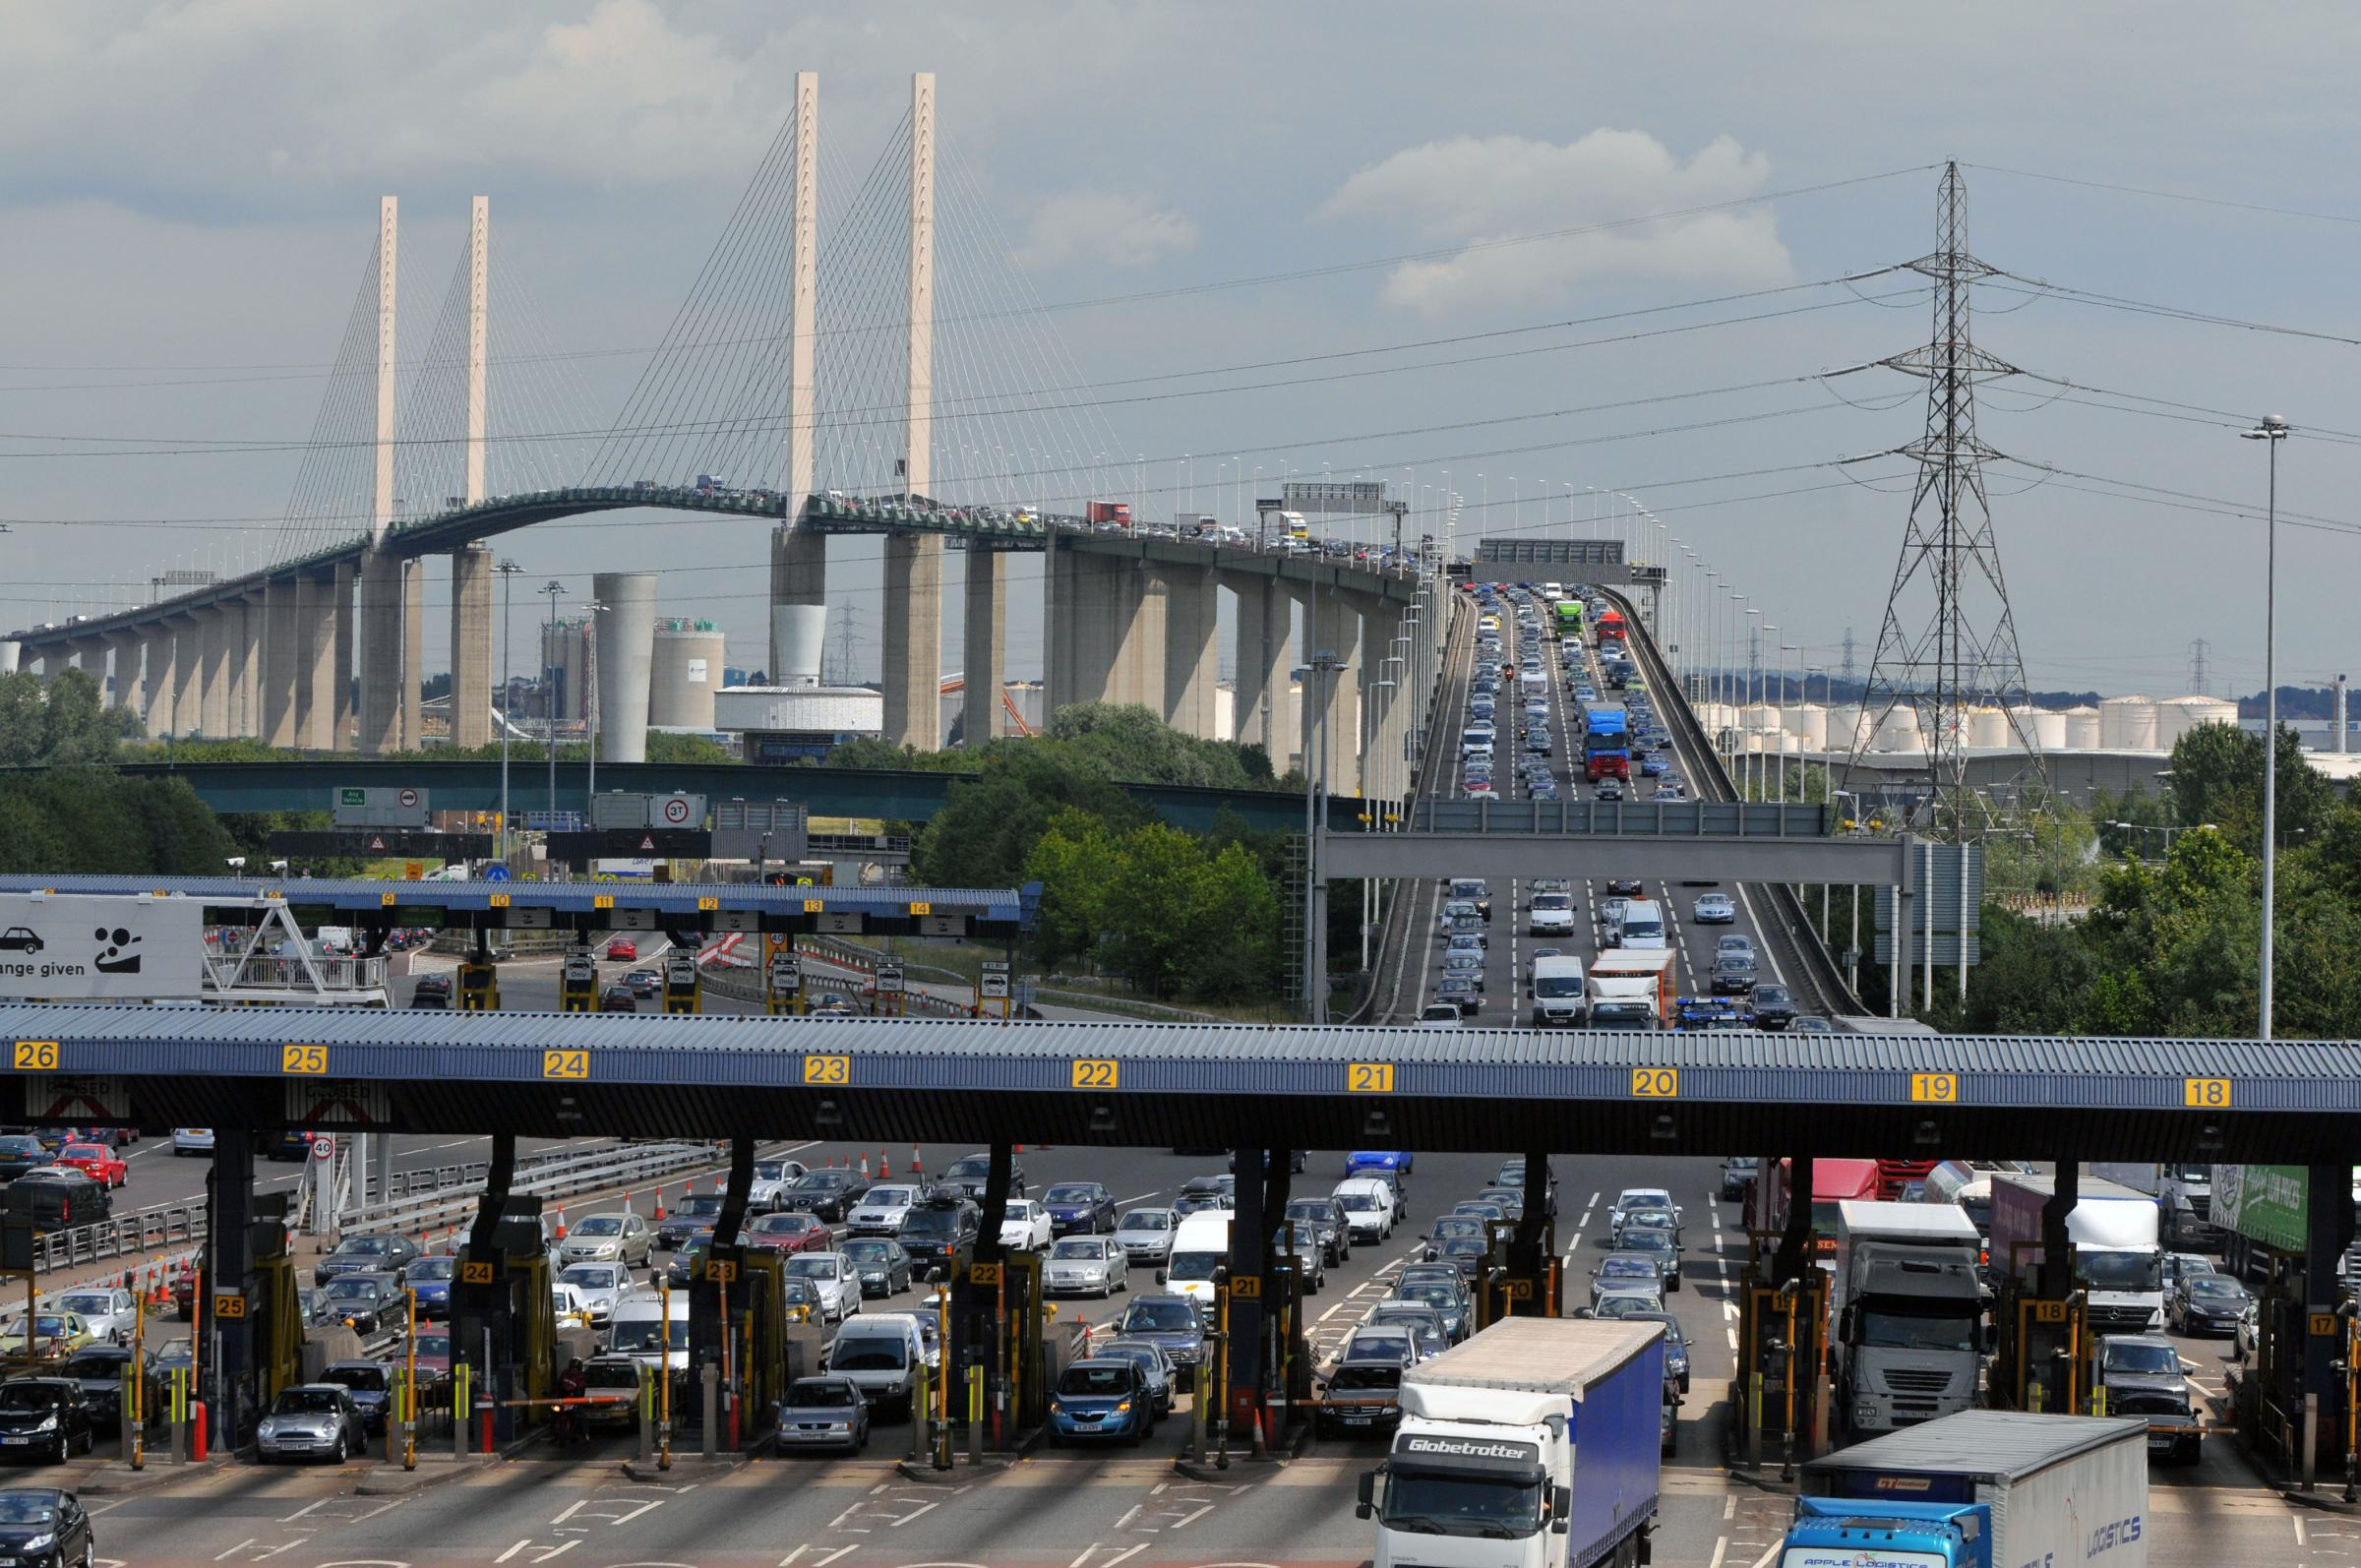 Kent Police has been checking dozens of lorries approaching the Dartford Crossing.